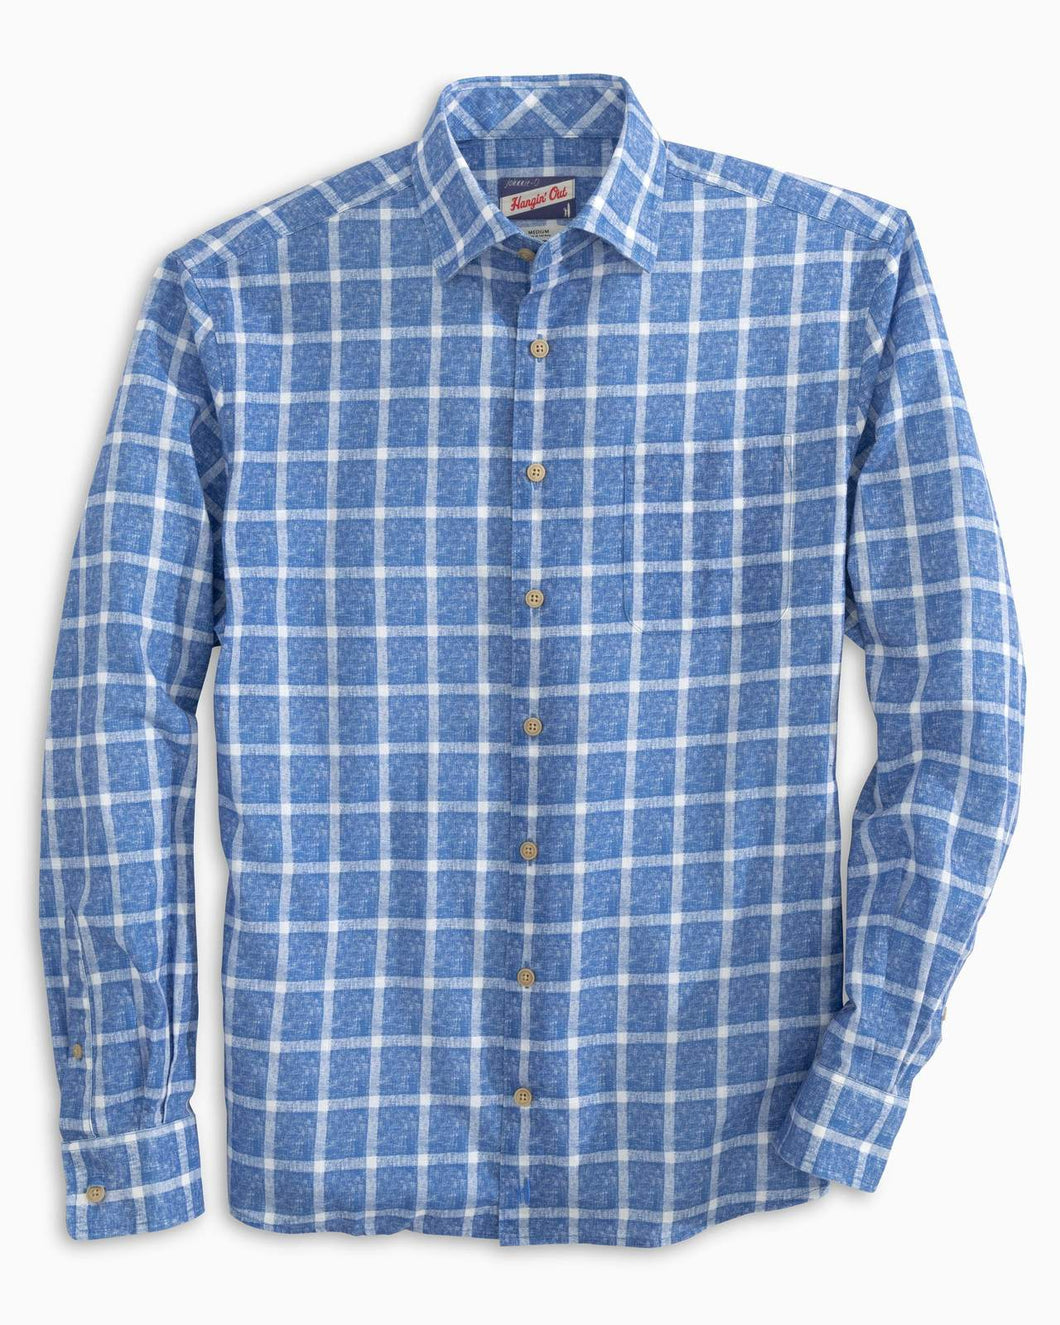 Johnnie O Alto Button Down - Laguna Blue - Liam John USA